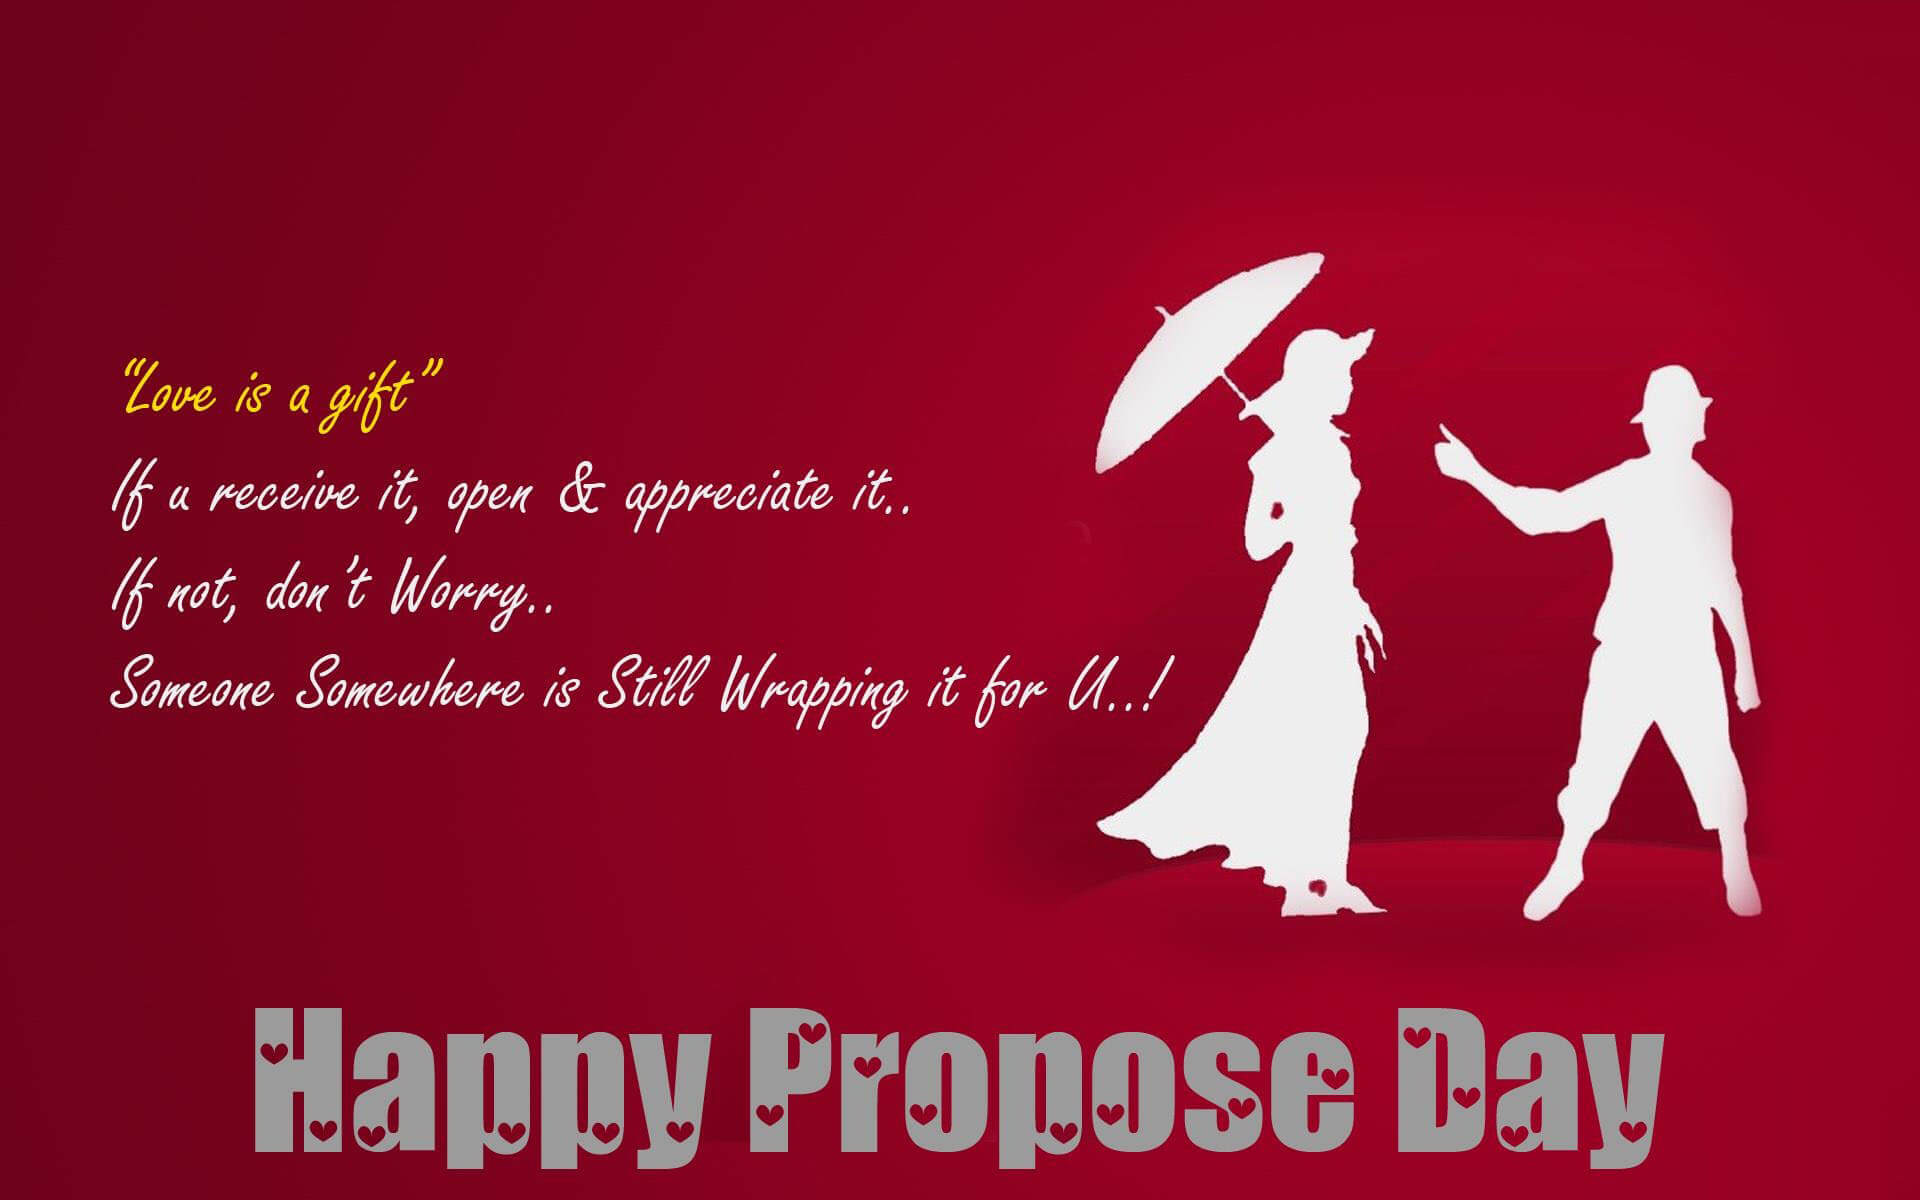 happy propose day quotes couples february 8th desktop pc hd wallpaper